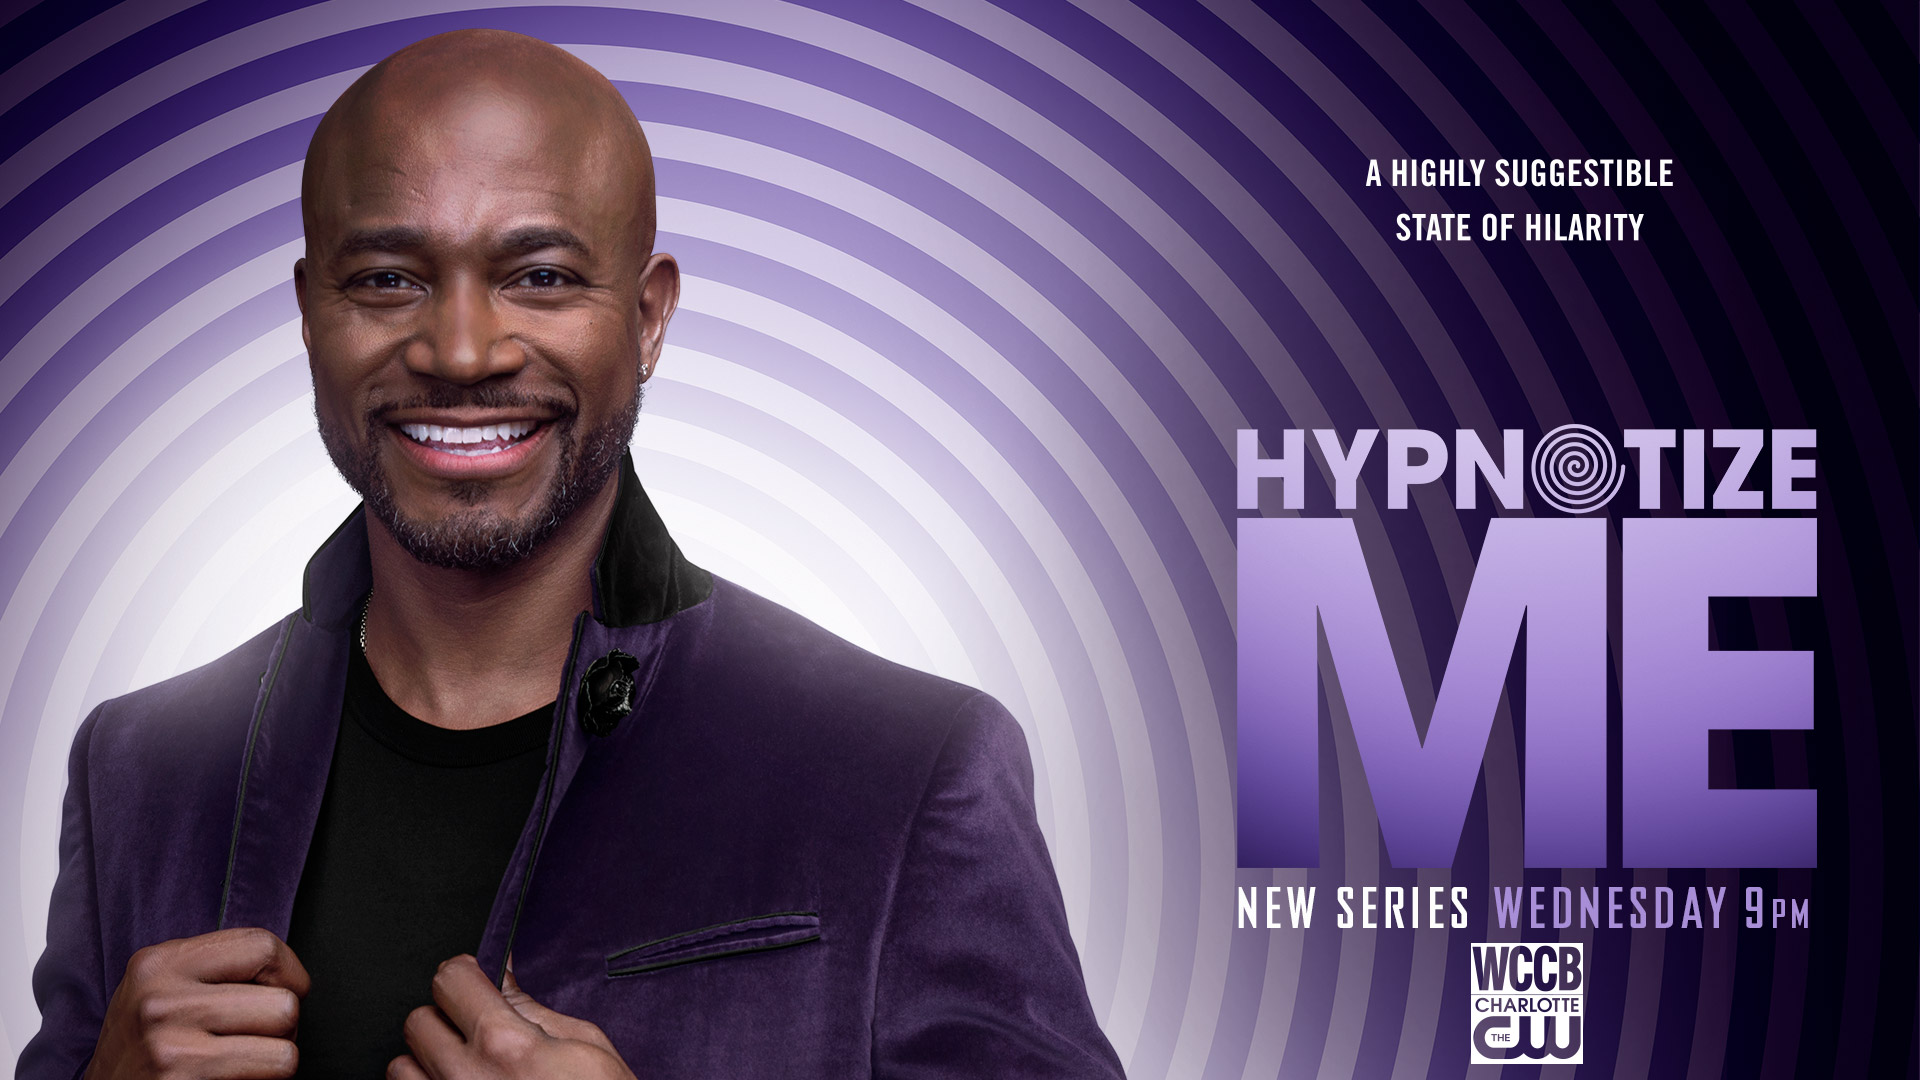 Hypnotize Me New Series Wednesday at 9 PM on WCCB Charlotte's CW